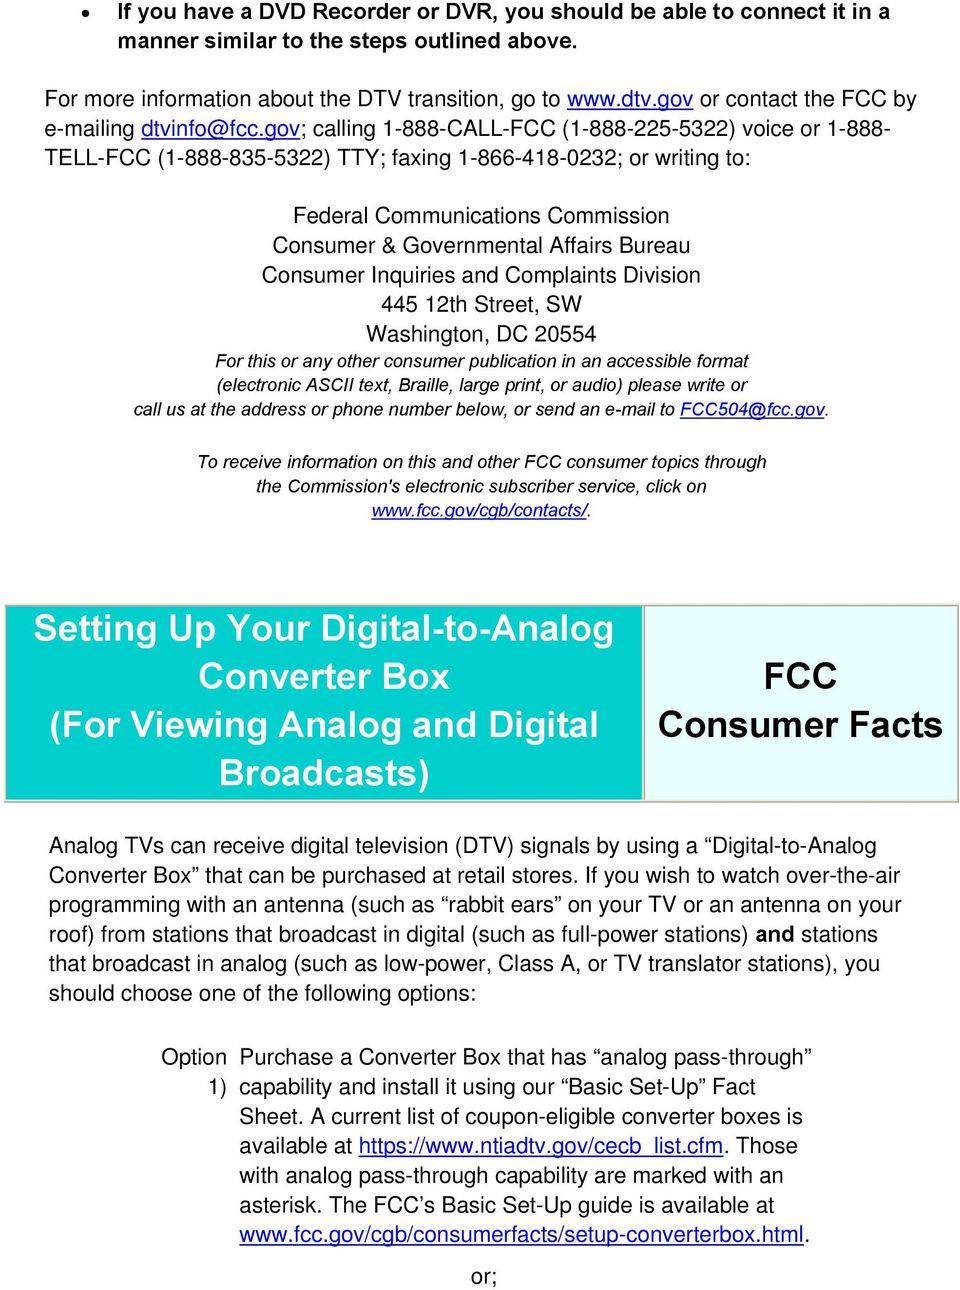 gov; calling 1-888-CALL-FCC (1-888-225-5322) voice or 1-888- TELL-FCC (1-888-835-5322) TTY; faxing 1-866-418-0232; or writing to: Federal Communications Commission Consumer & Governmental Affairs